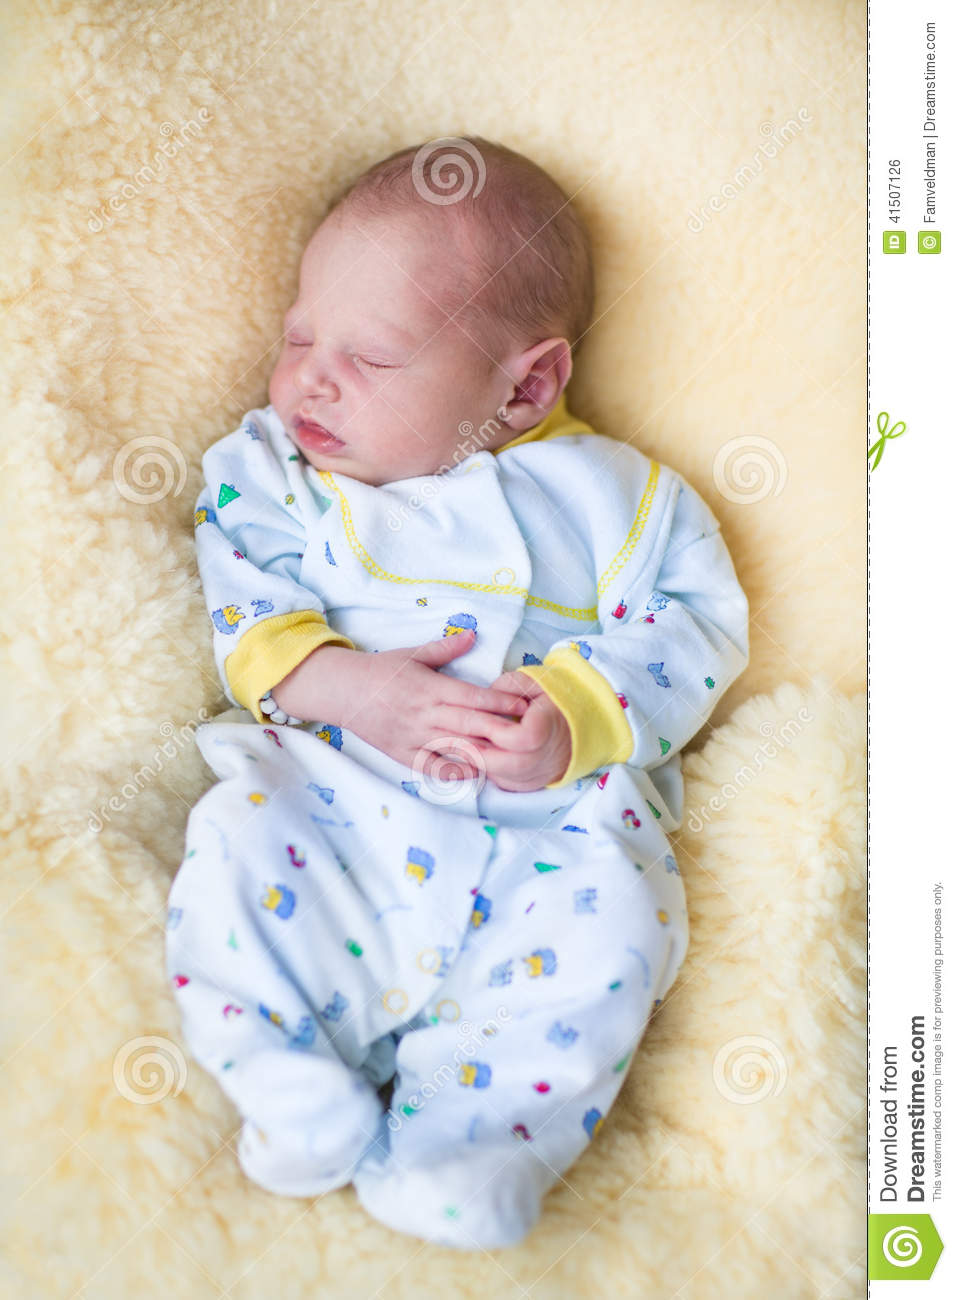 Newborn Baby Boy Sleeping On A Sheepskin Stock Photo